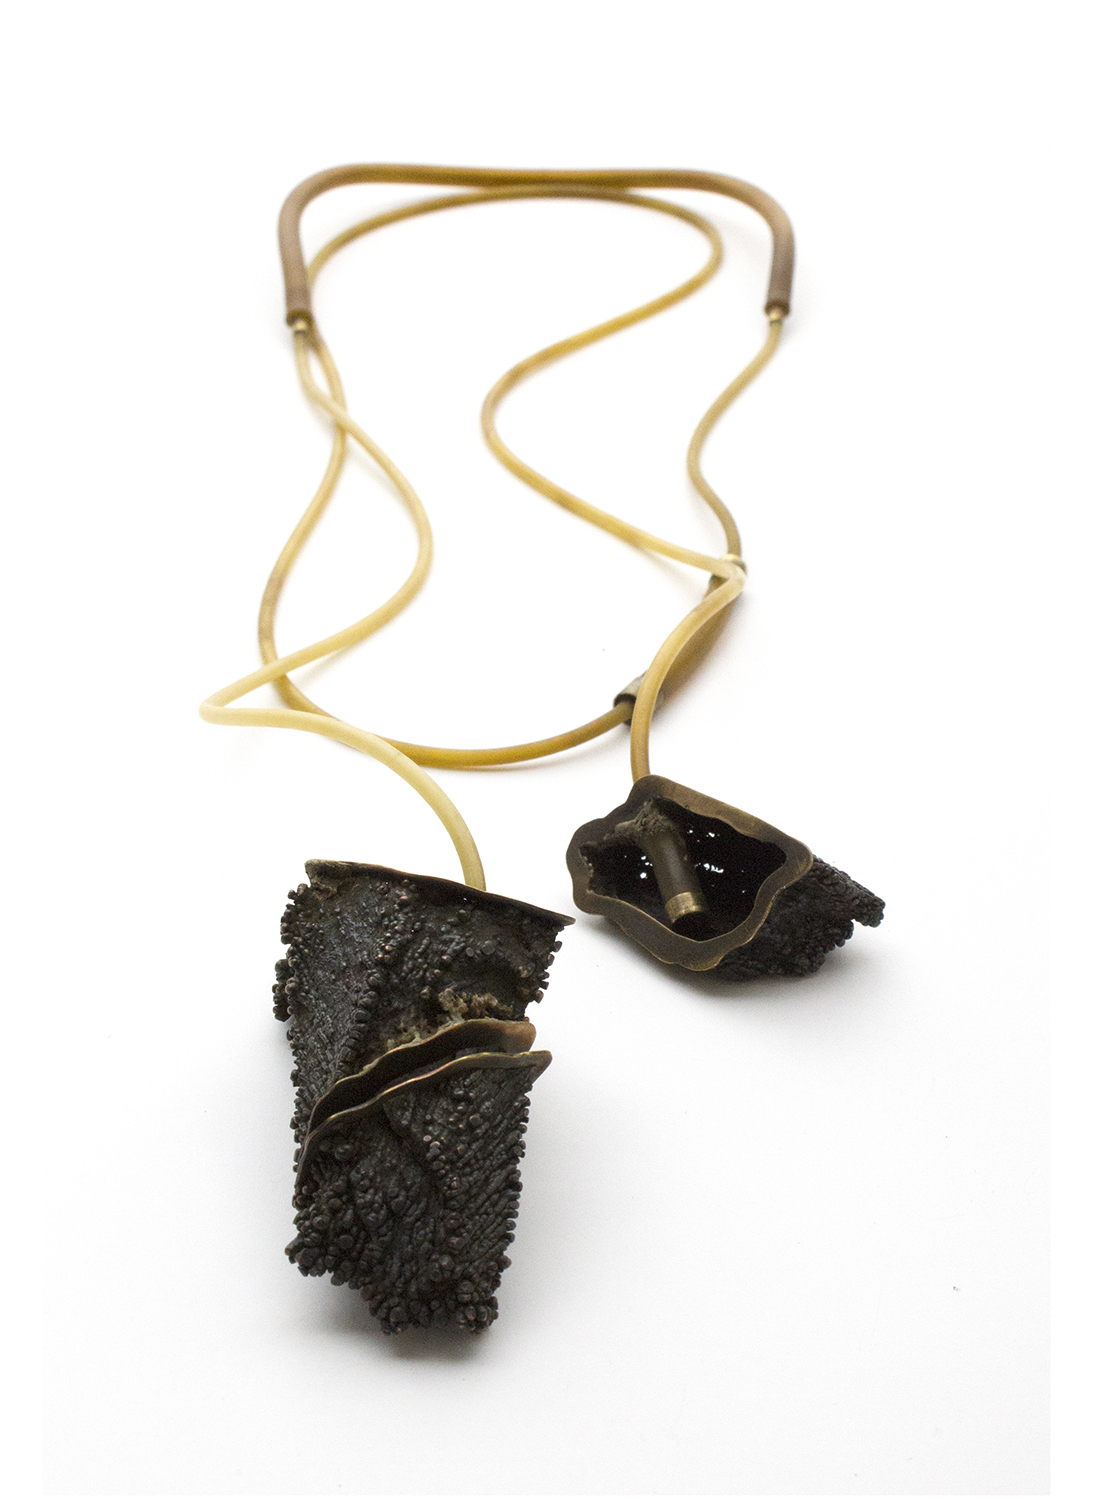 """Abandoned Series #1    Rene Henry, 2014  20 1/2"""" x 5 1/2"""" x 1 1/4""""  Copper, brass, natural rubber"""